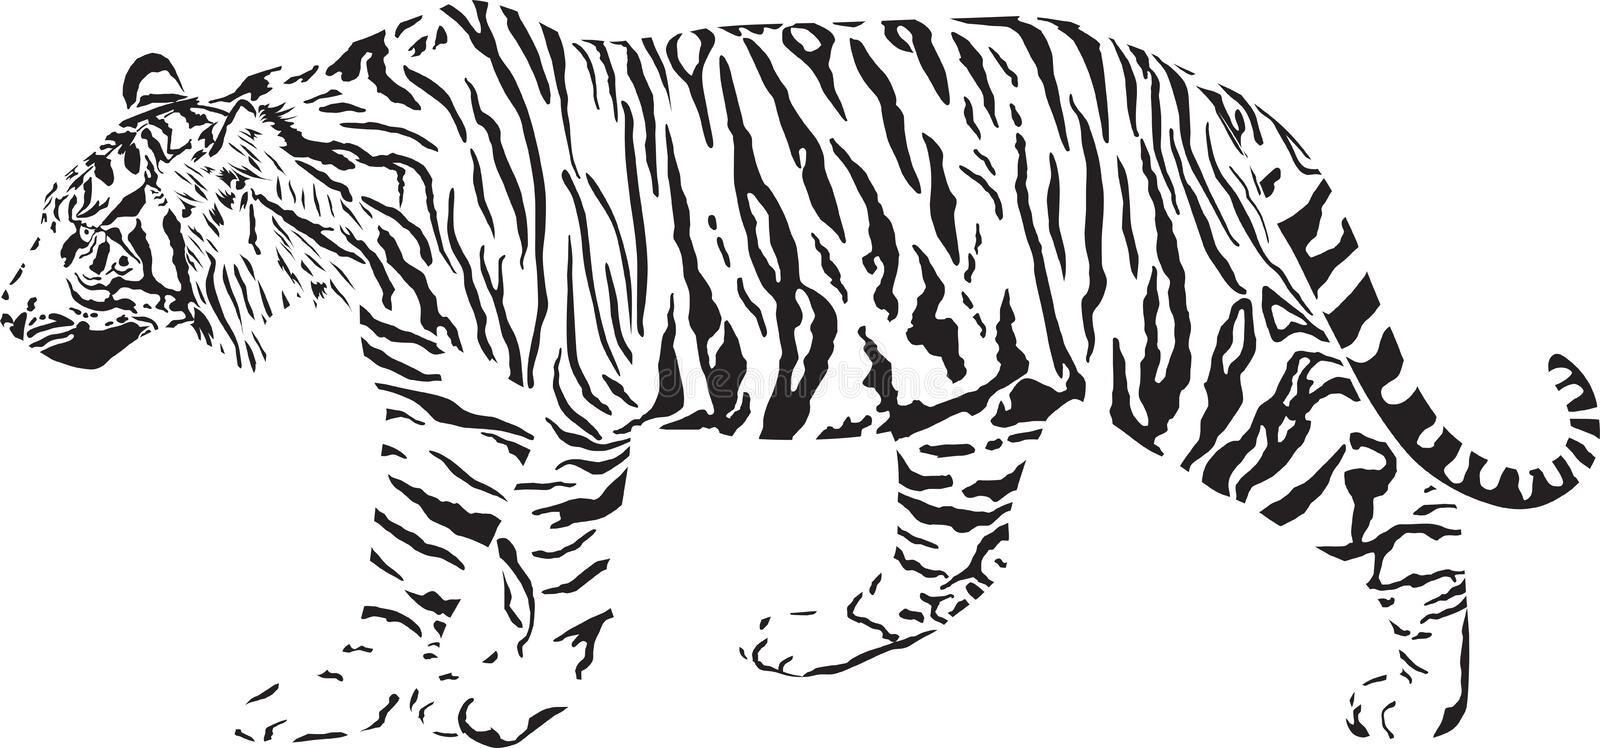 Tiger - Black and white royalty free illustration